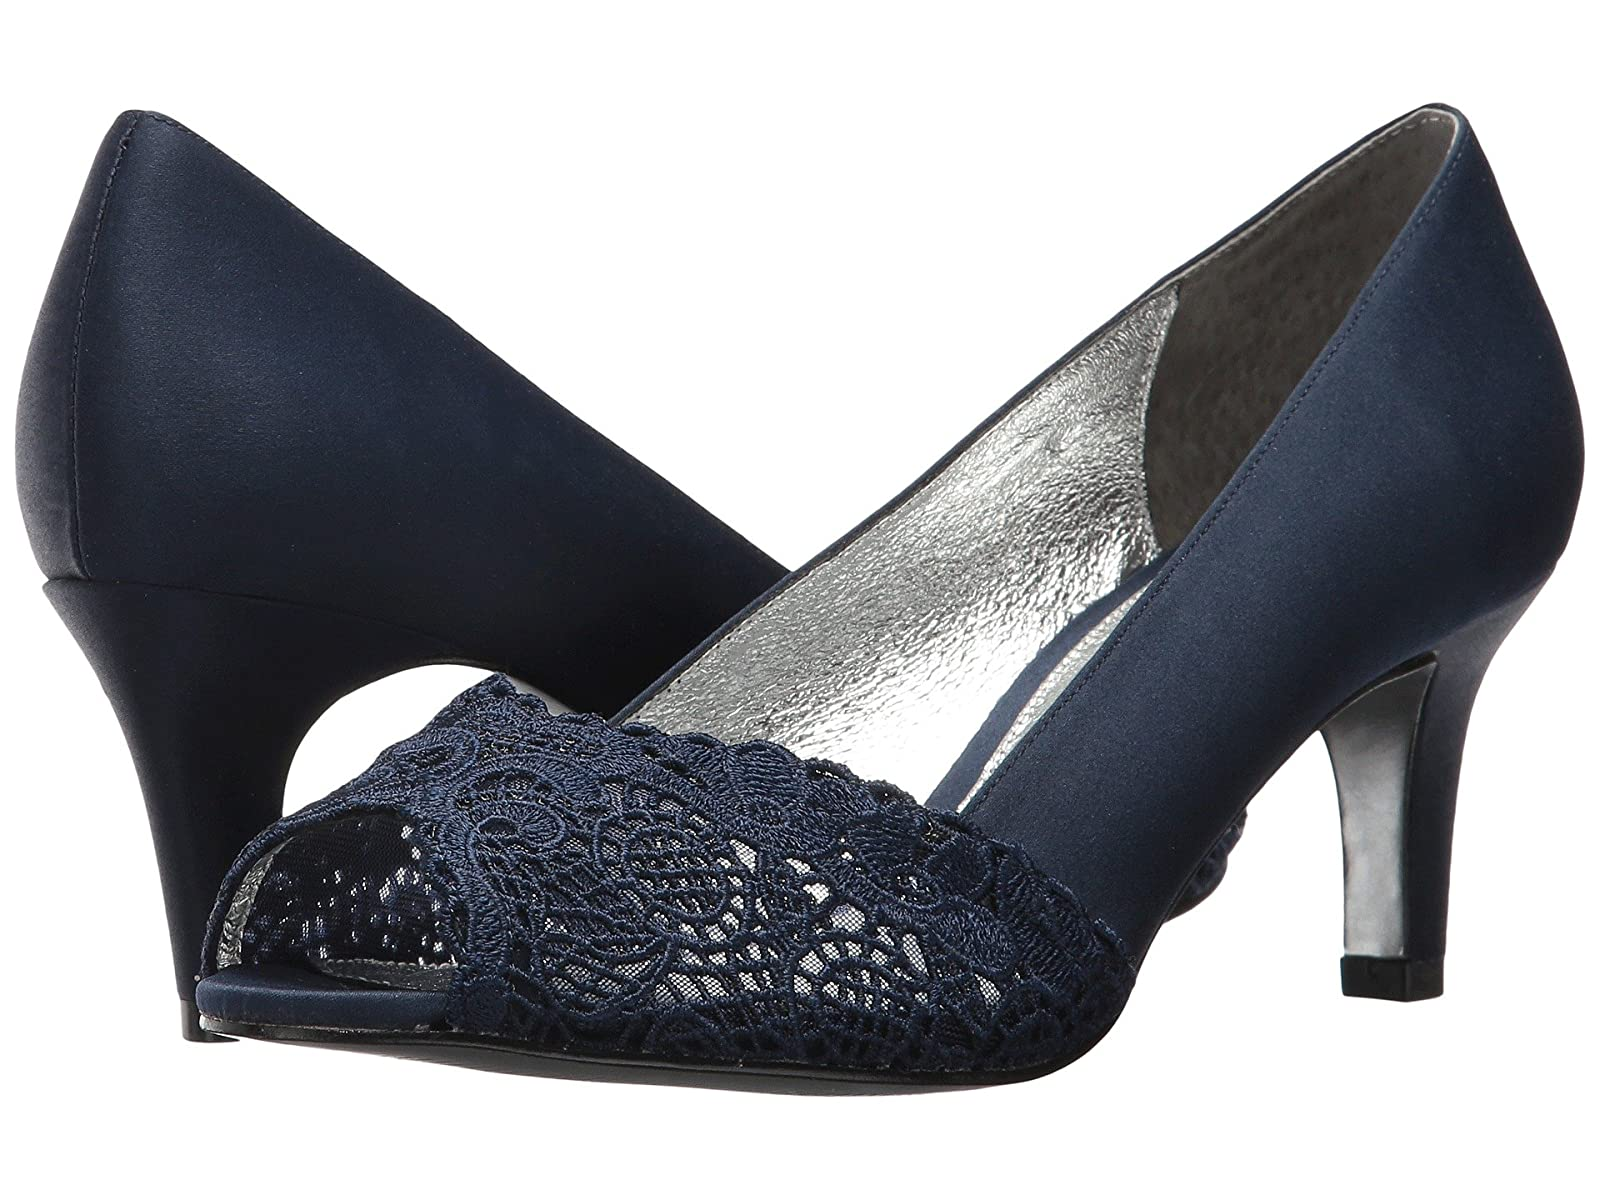 Adrianna Papell JudeAtmospheric grades have affordable shoes